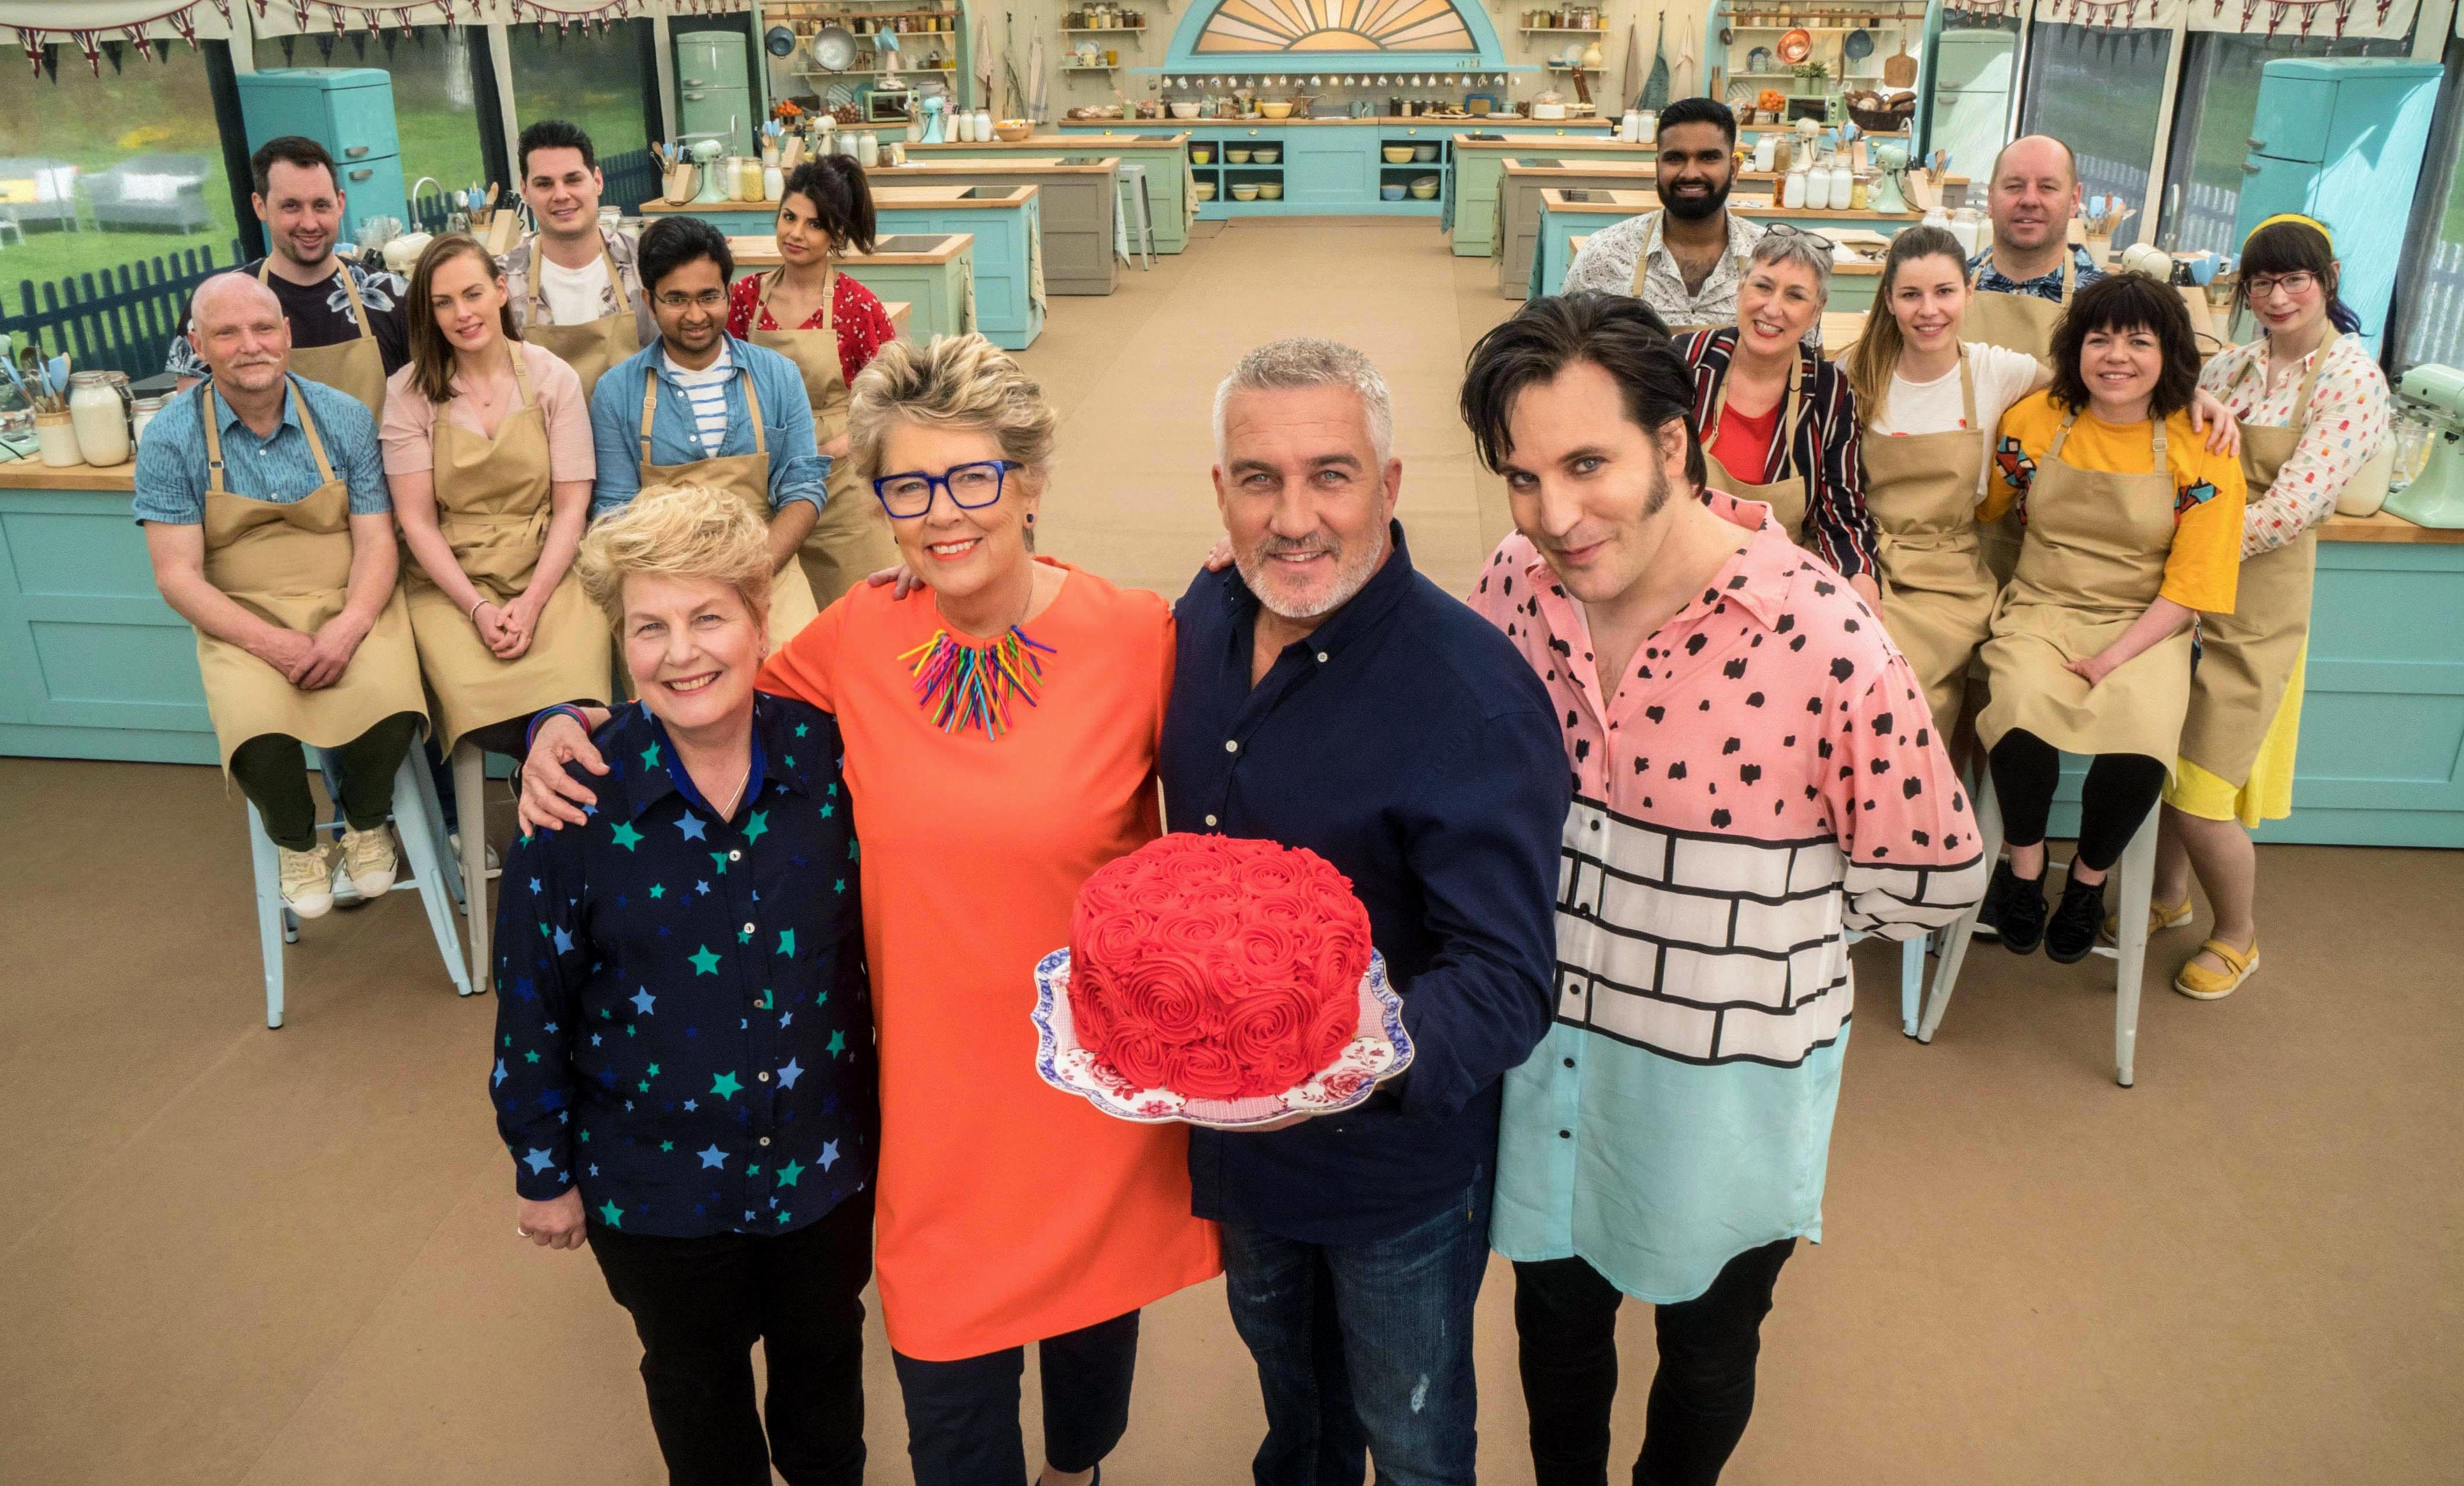 Bake Off Contestants: Everything You Need To Know About who's Left forecast